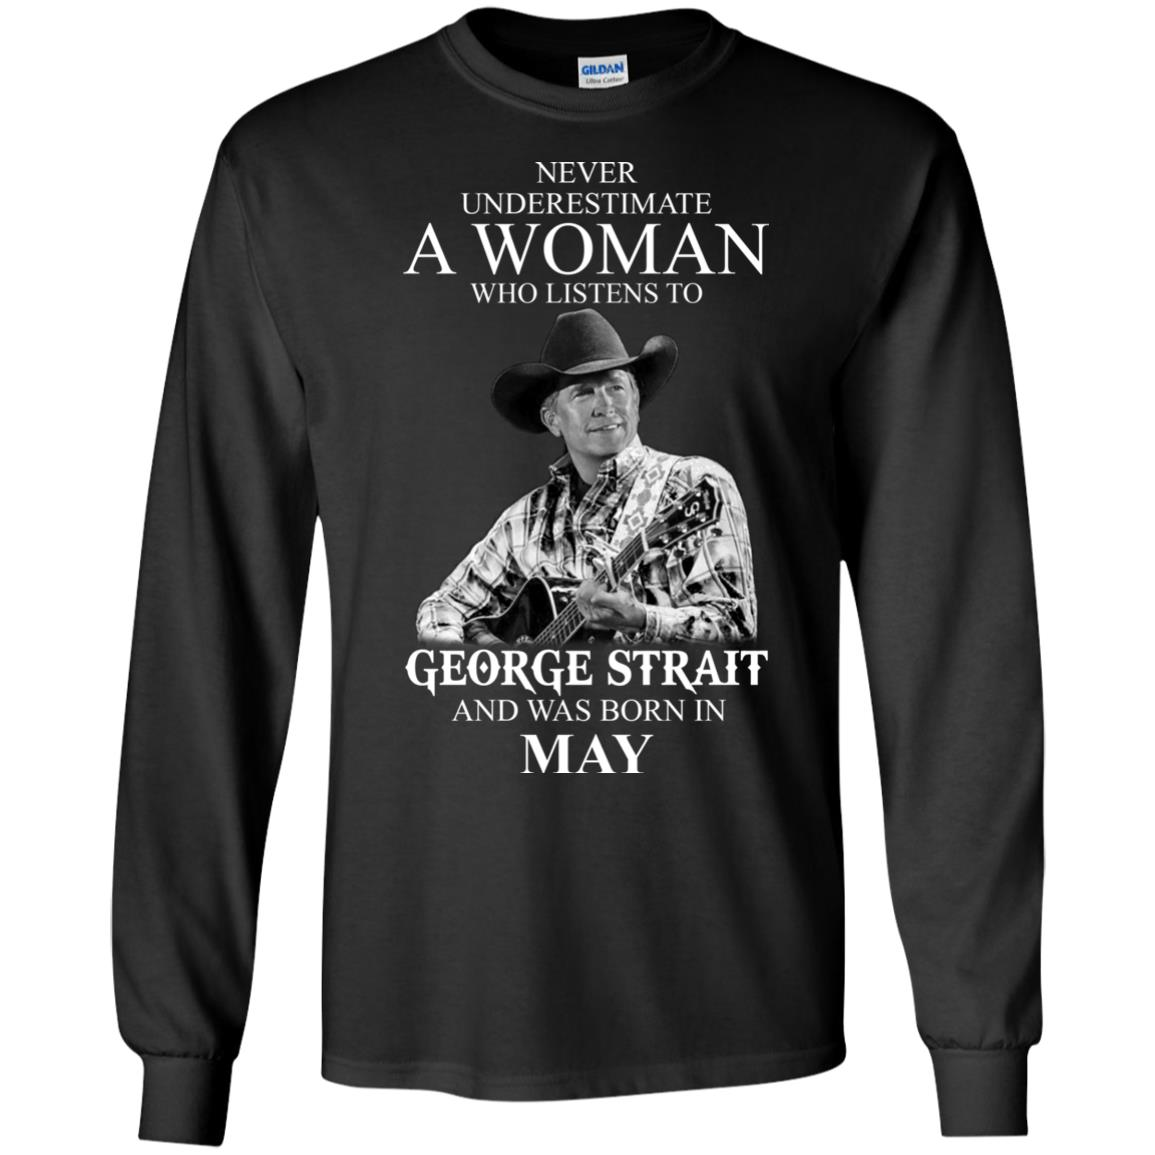 image 412 - Never Underestimate A Woman Who Listens To George Strait And Was Born In May shirt